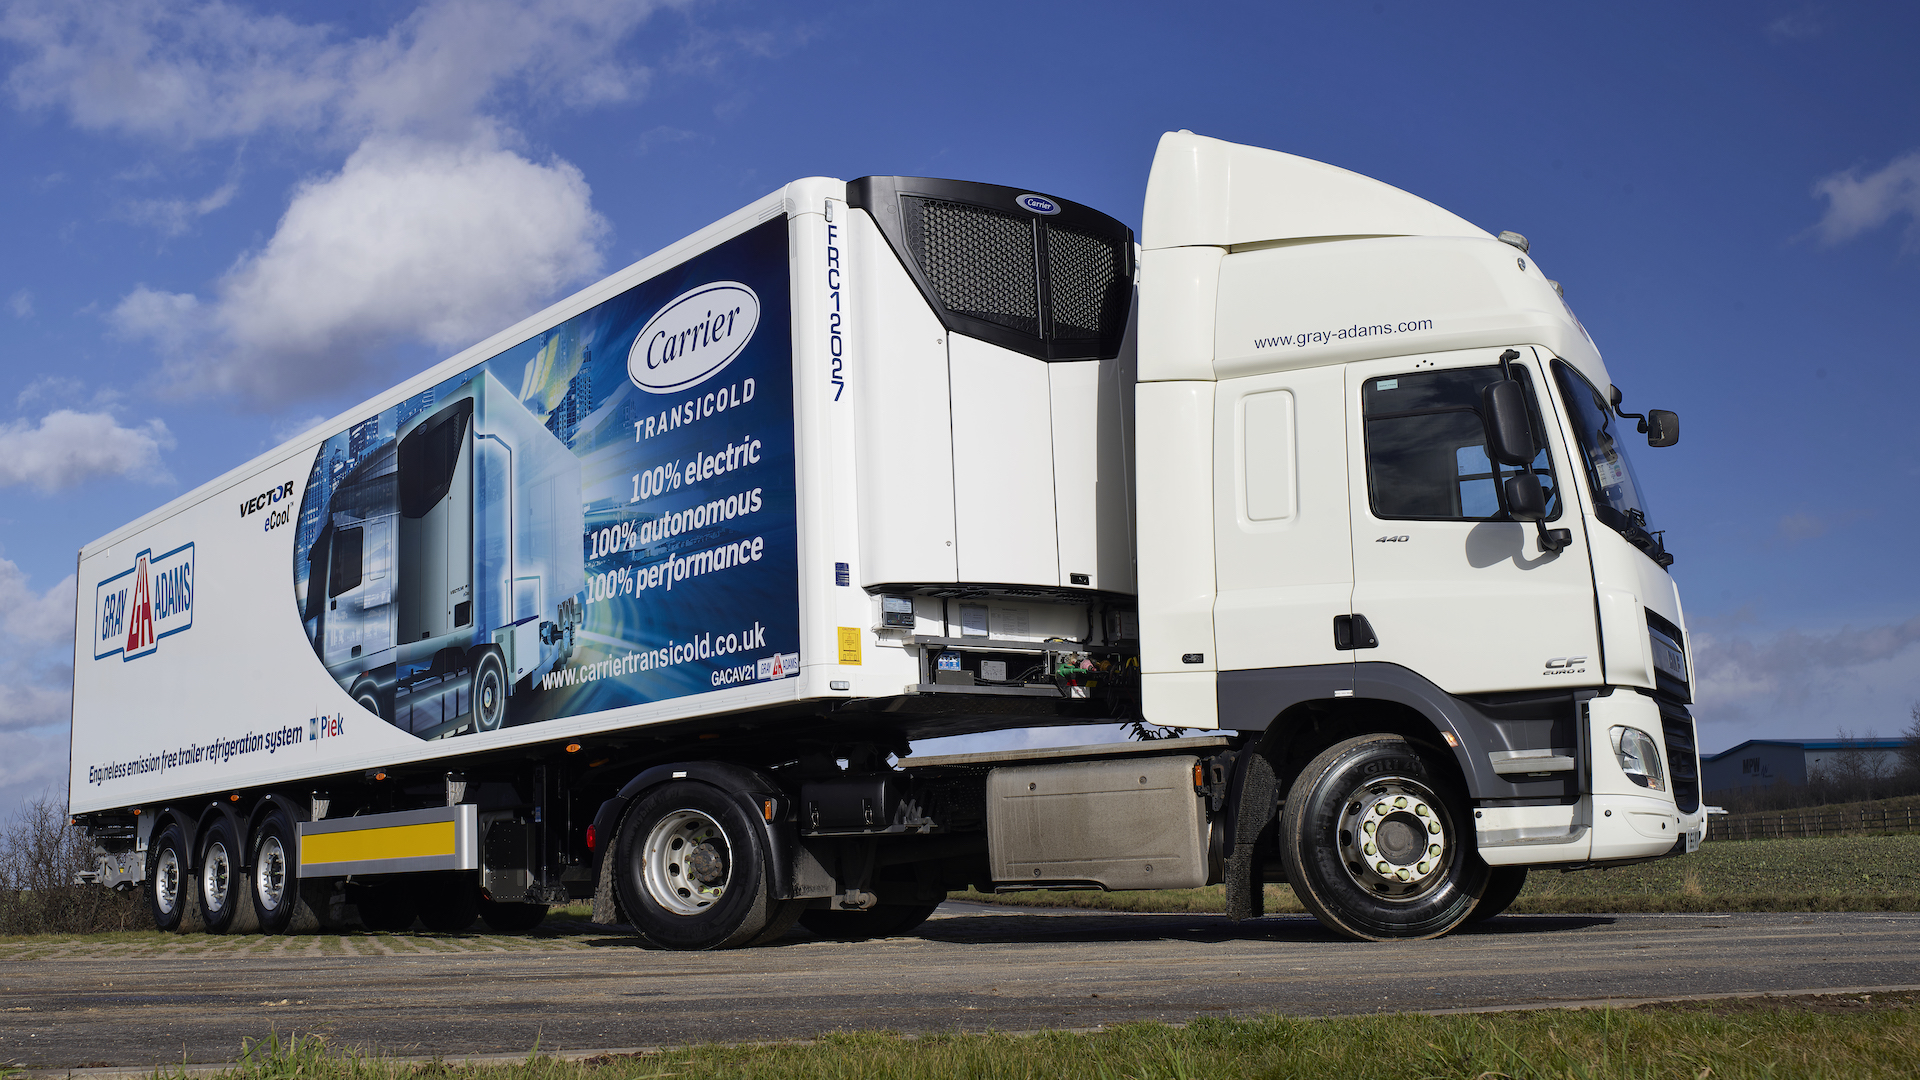 Carrier Transicold & G&A Vector ECool Demonstrator